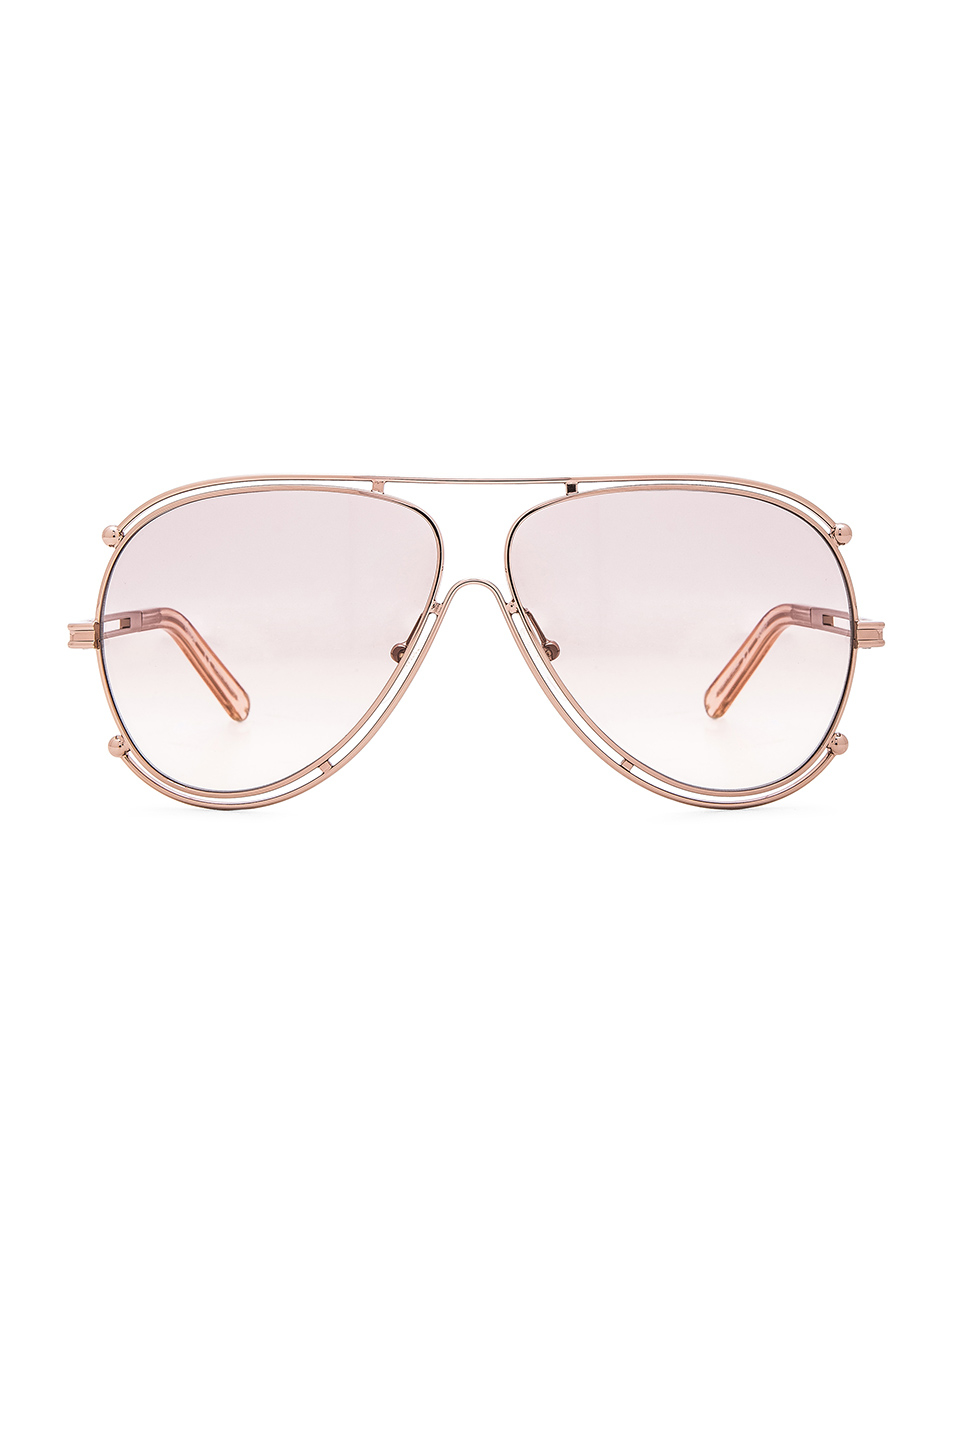 4e280aac34b4a Lyst - Chloé Isadora Aviator Sunglasses in Pink